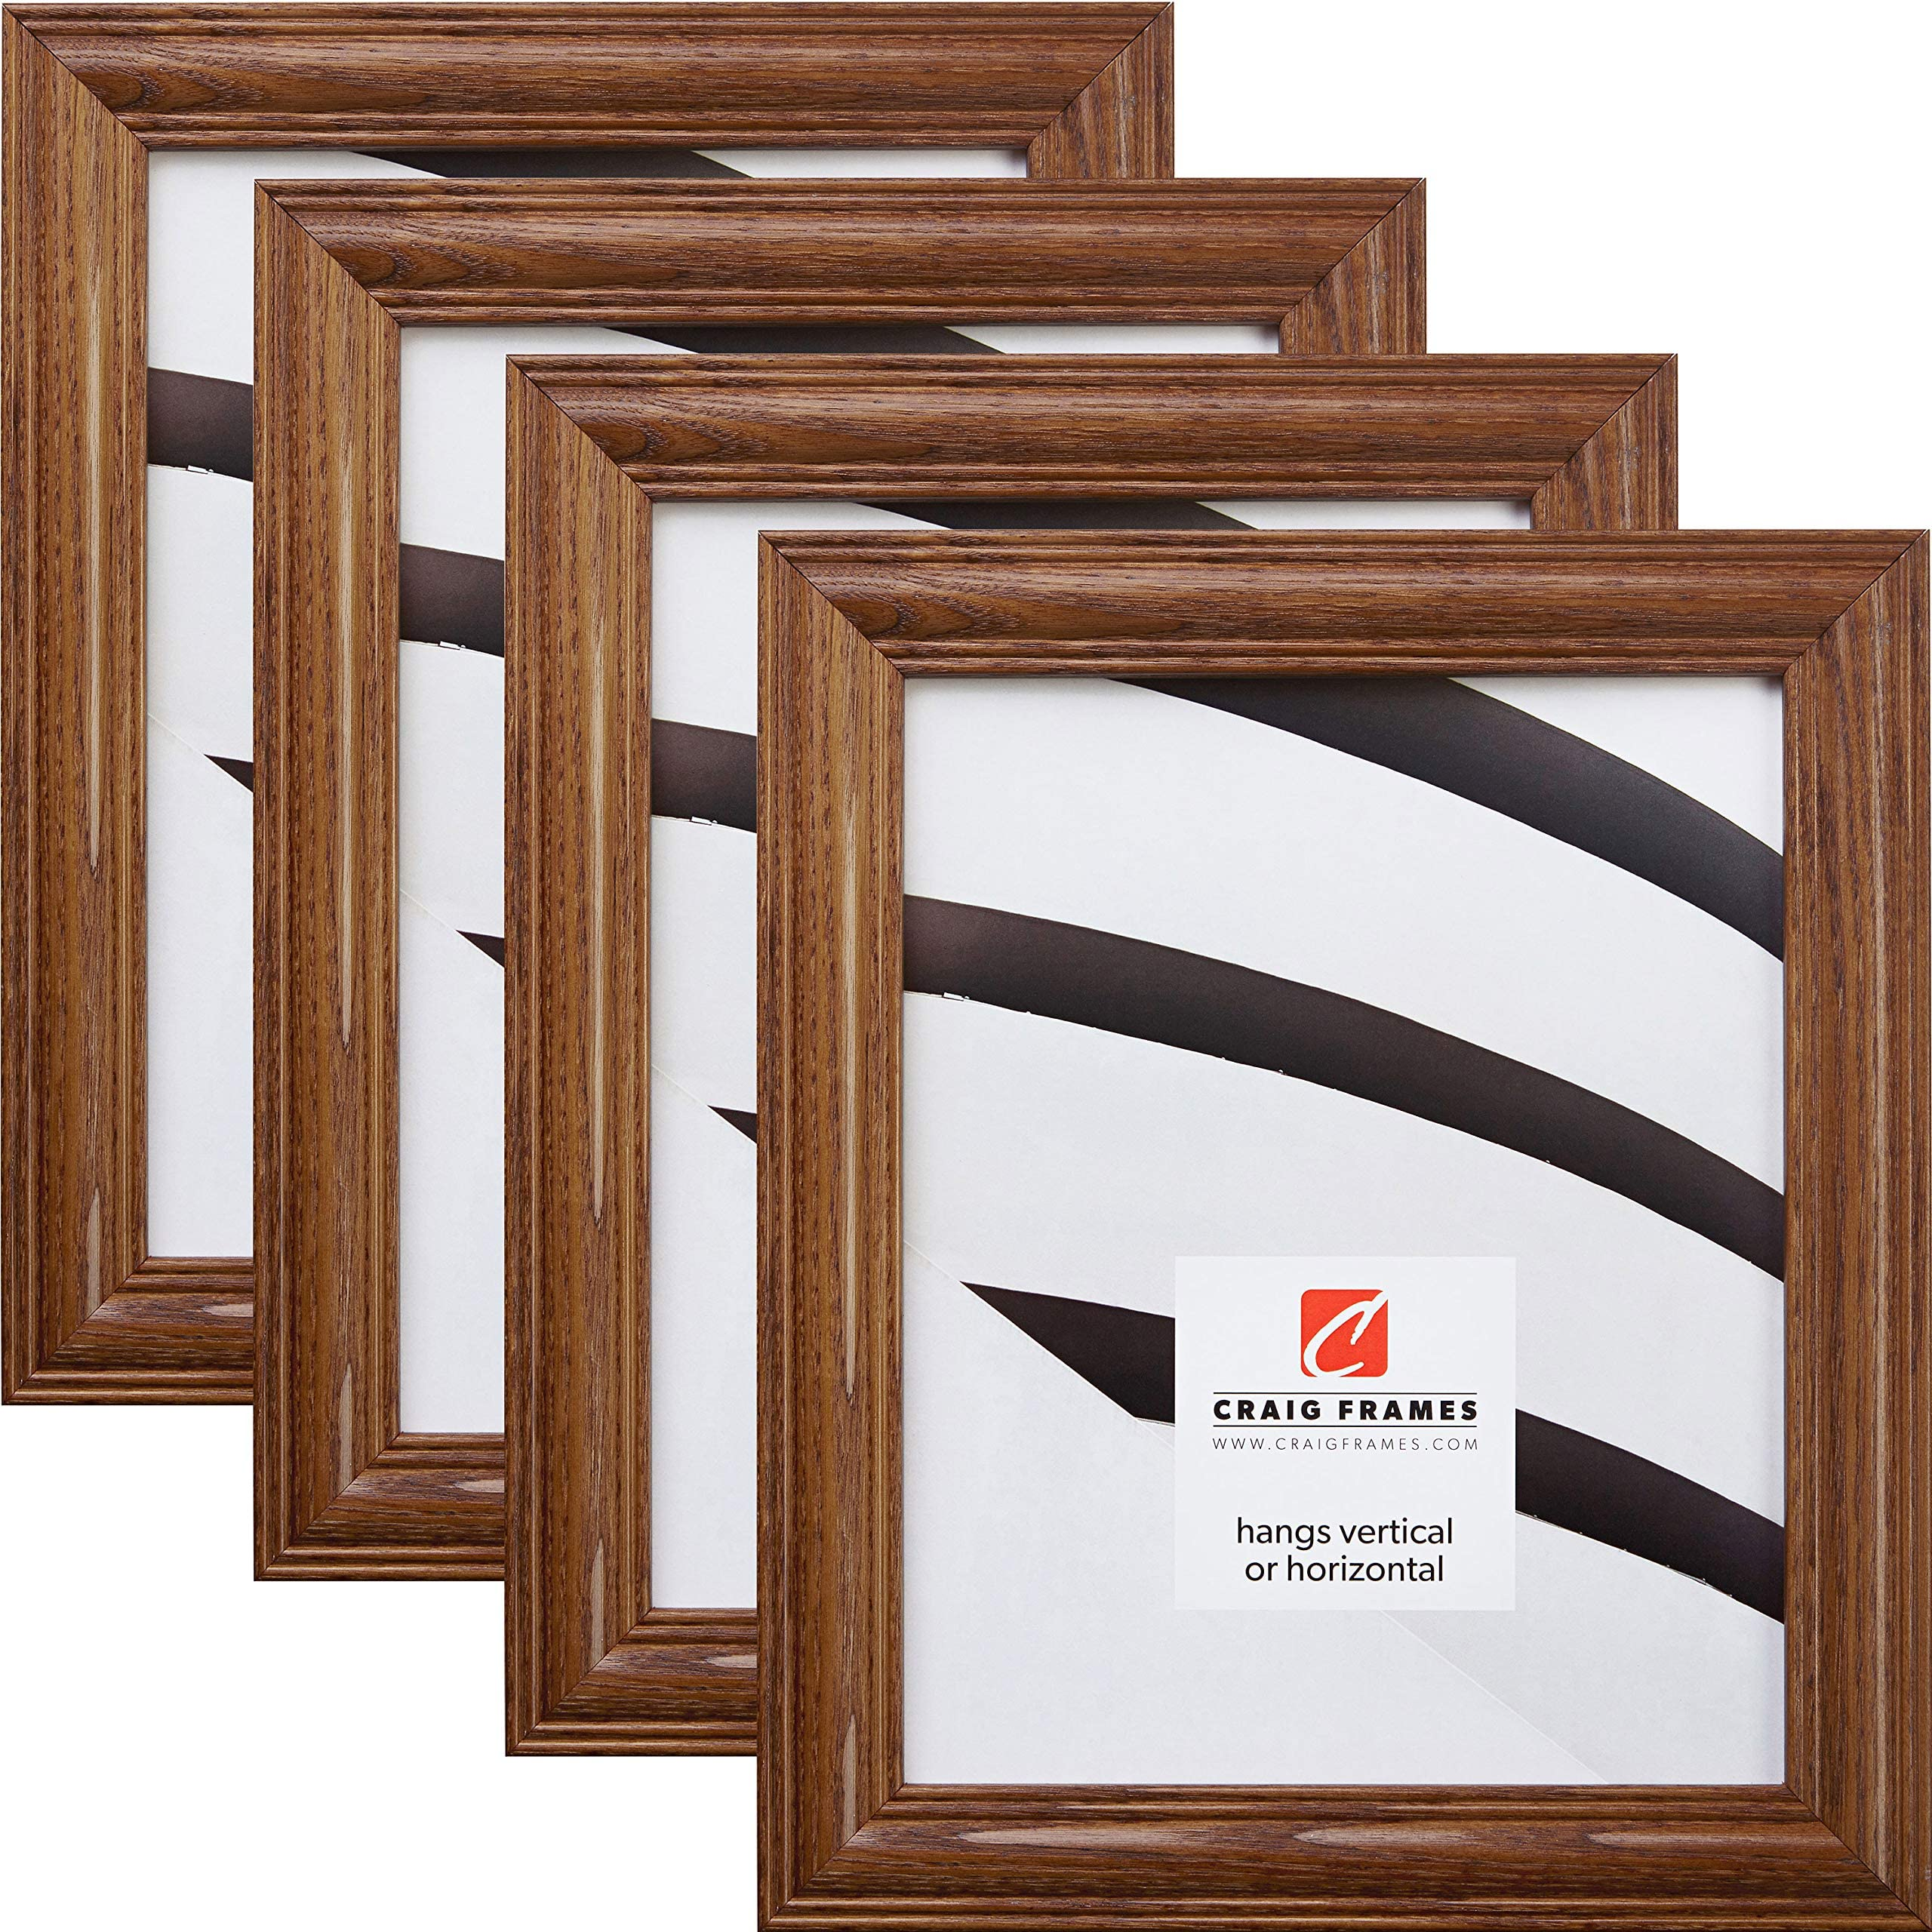 2-Inch Contemporary Upscale Craig Frames 11x14 Inch Distressed Walnut Brown Picture Frame 760041114